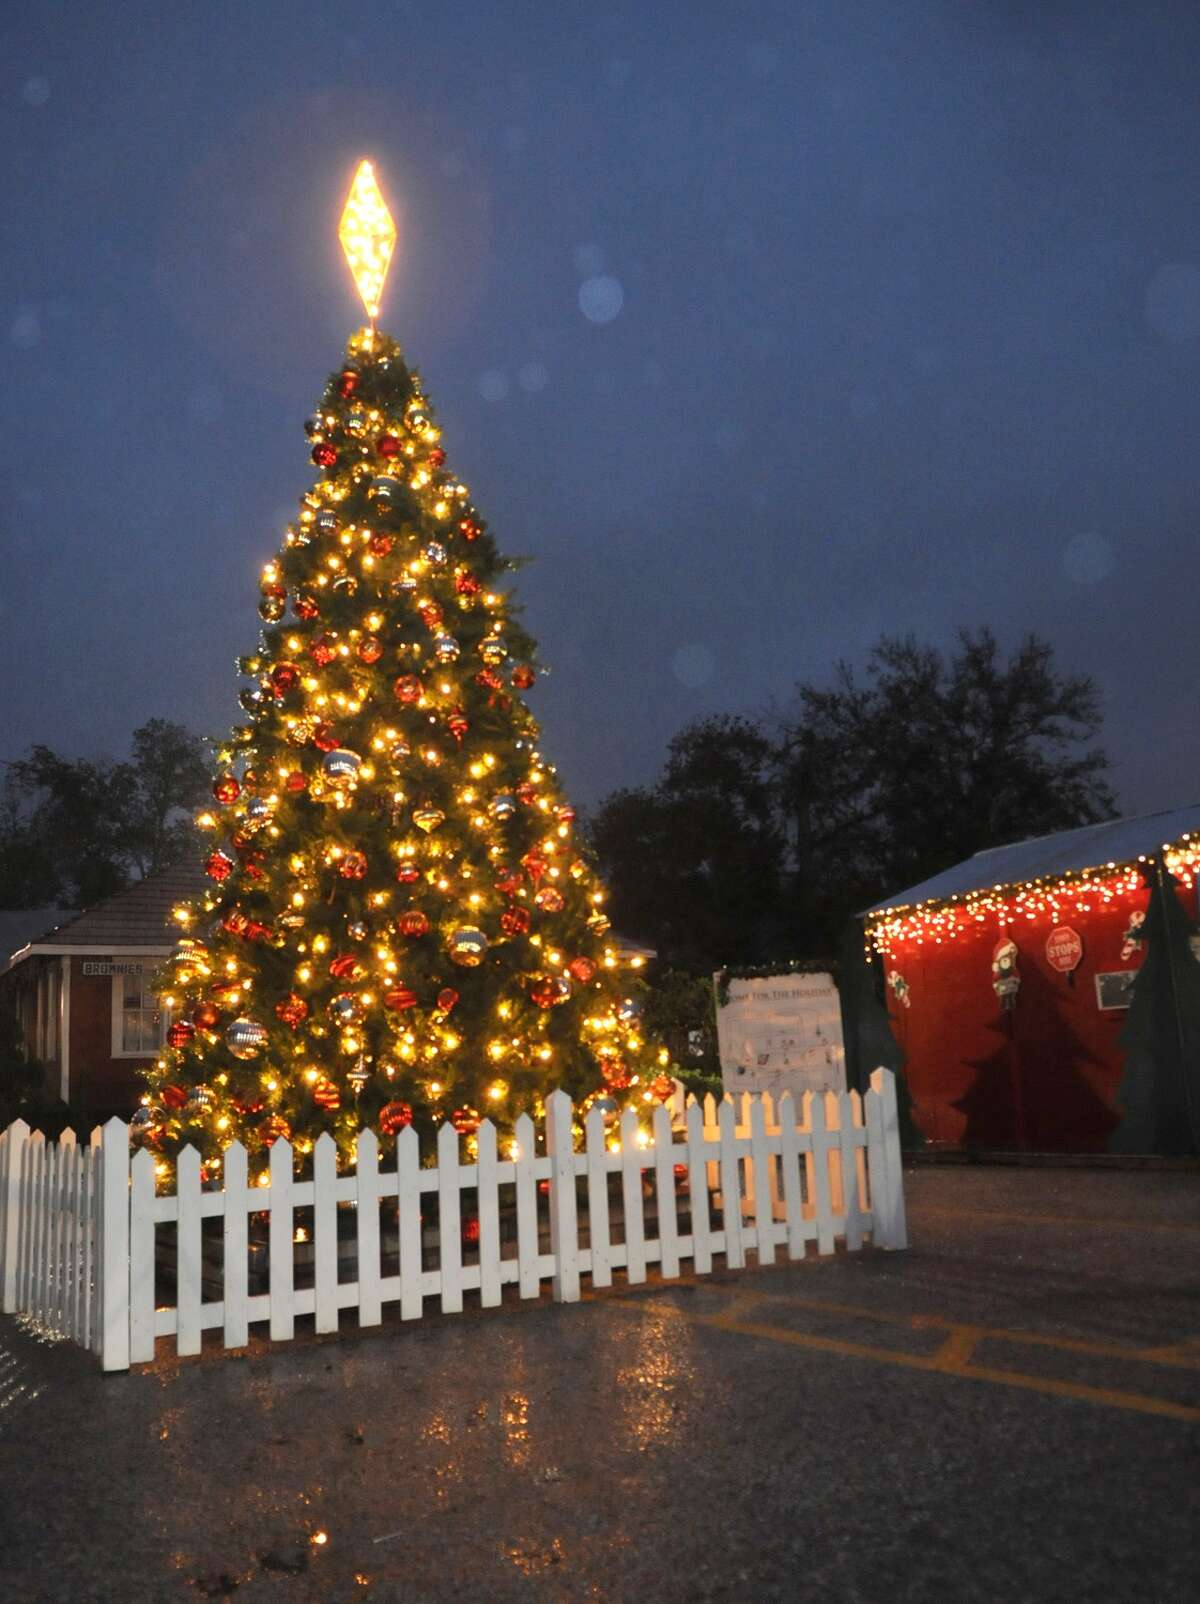 A 30-foot tall Christmas tree sits next to Santa's cabin in Santa's Village in Old Town Spring. The annual Home for the Holidays in Old Town Spring is under way every weekend between through Dec. 21. Family friendly activities, display of lights, trackless train rides, and photos with Santa are part of the activities.